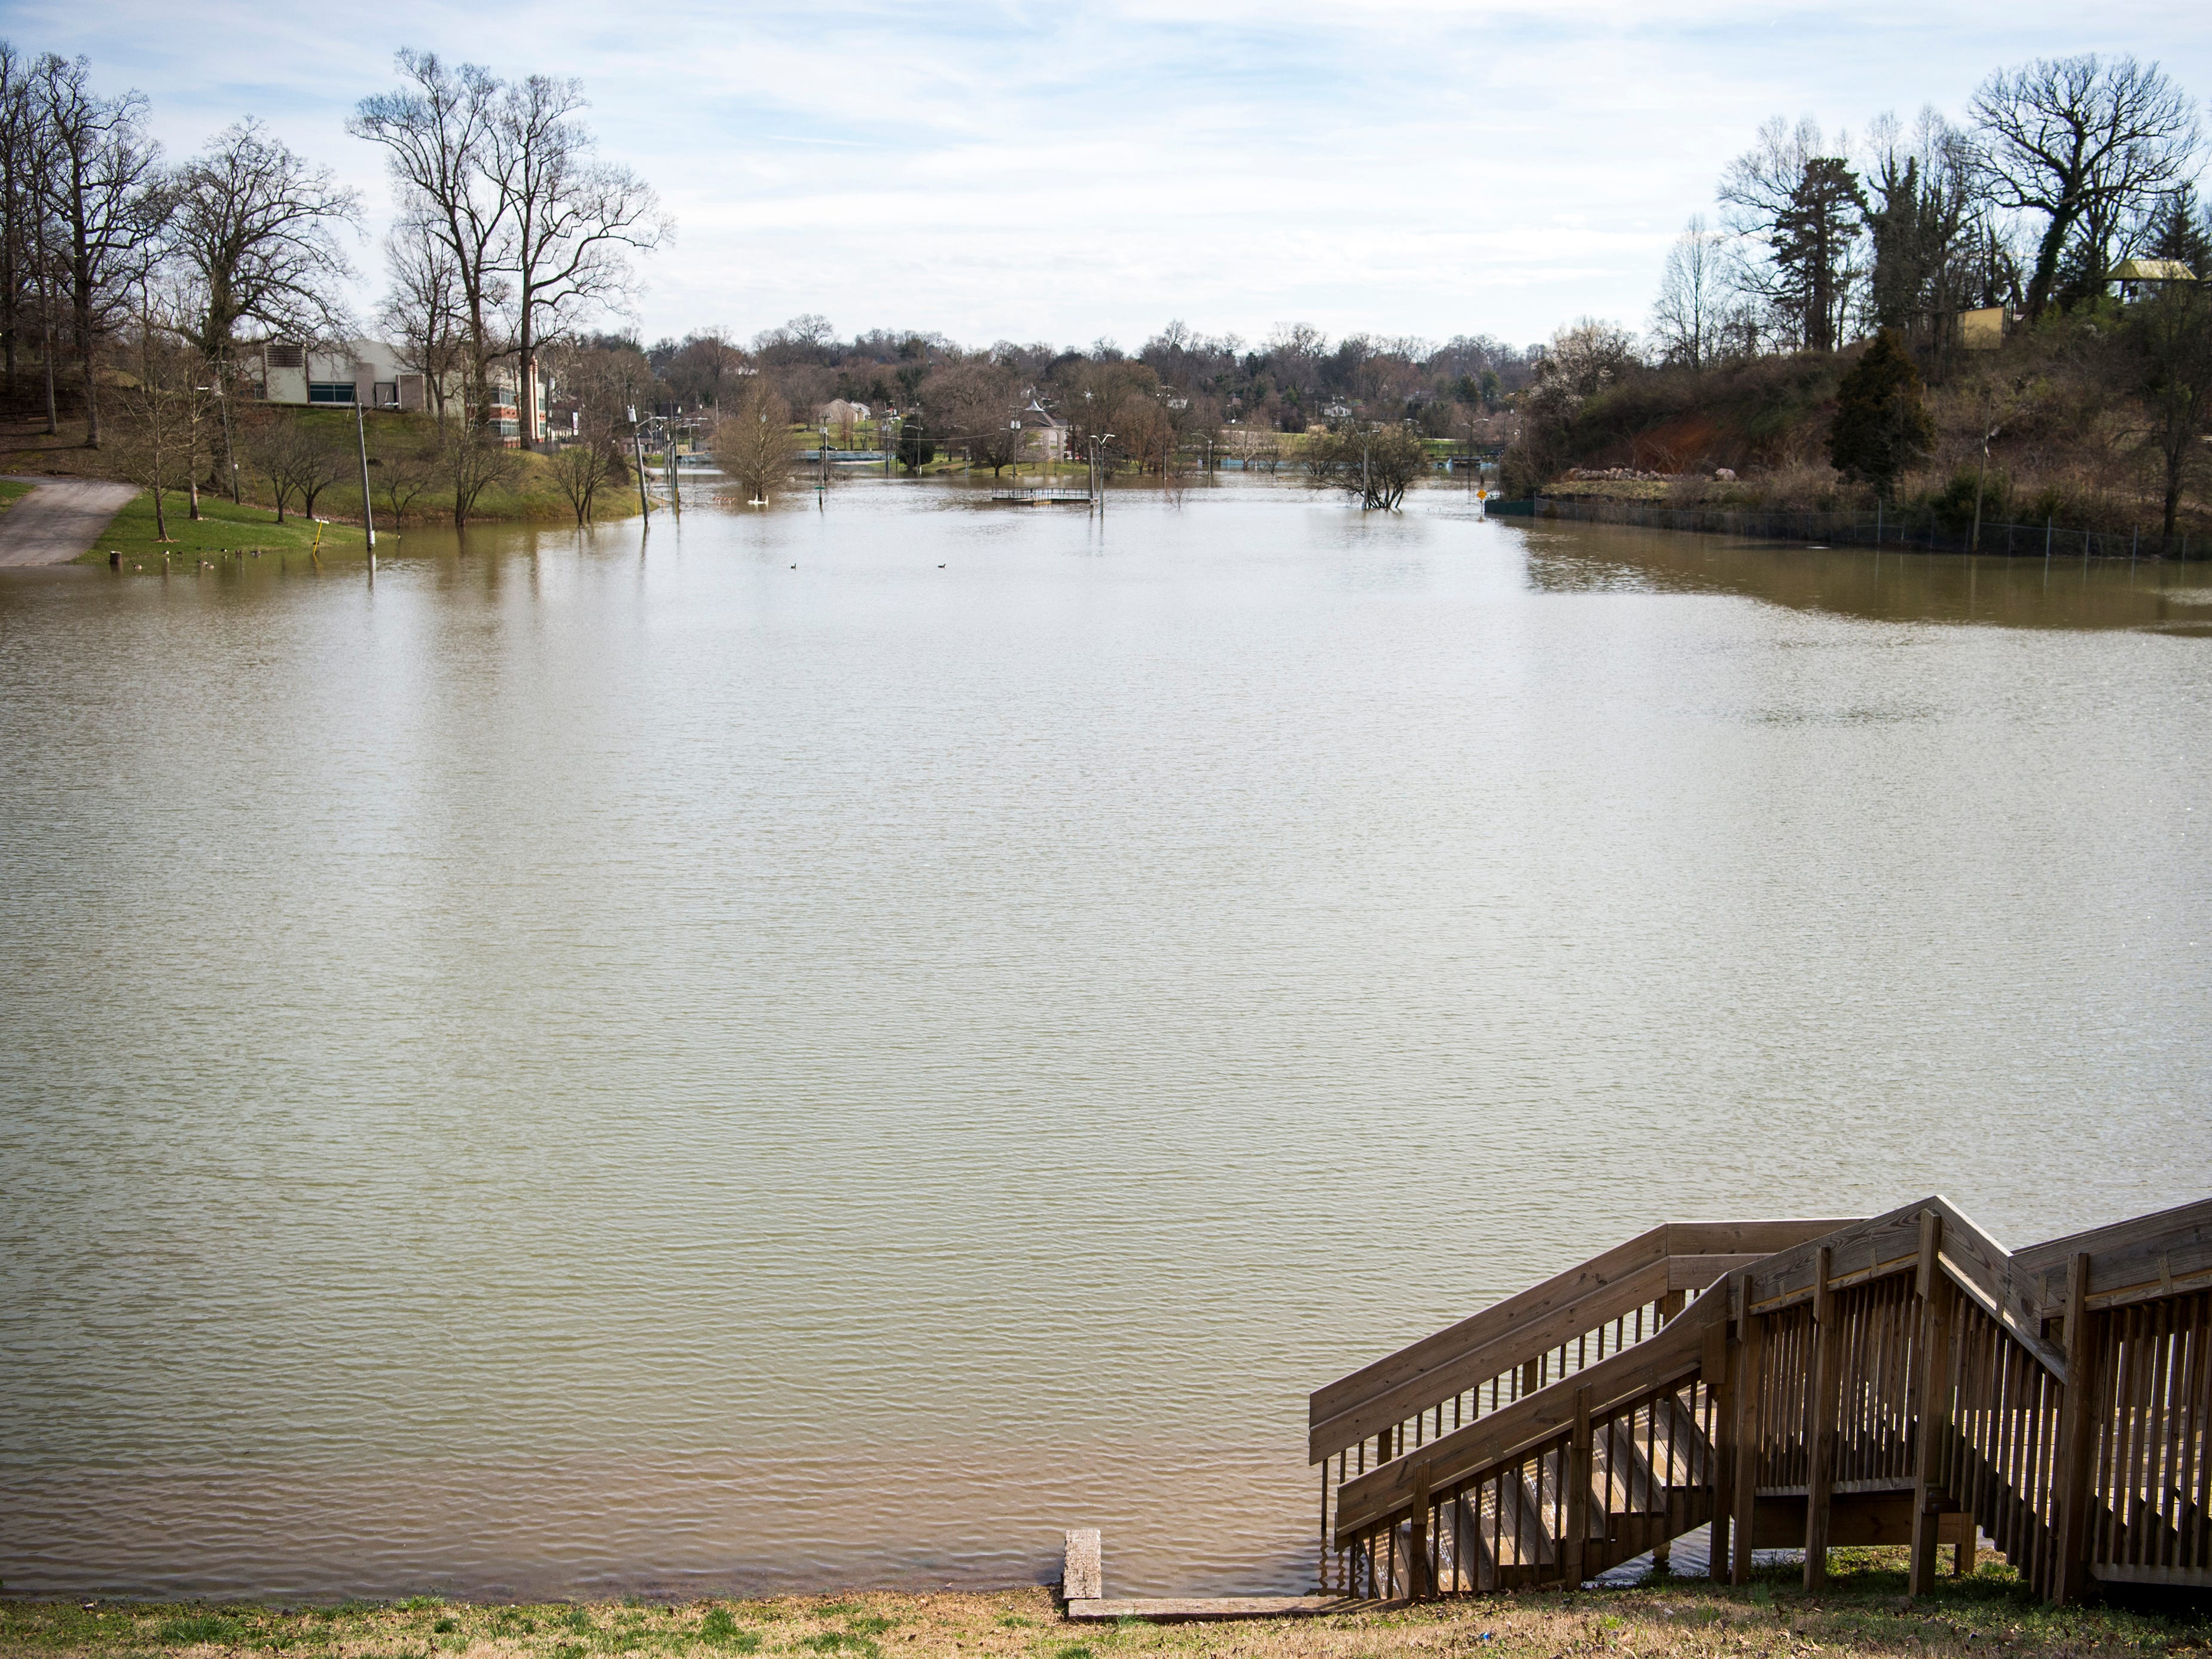 Water continues to flood Chilhowee Park in Knoxville on Tuesday, February 26, 2019.